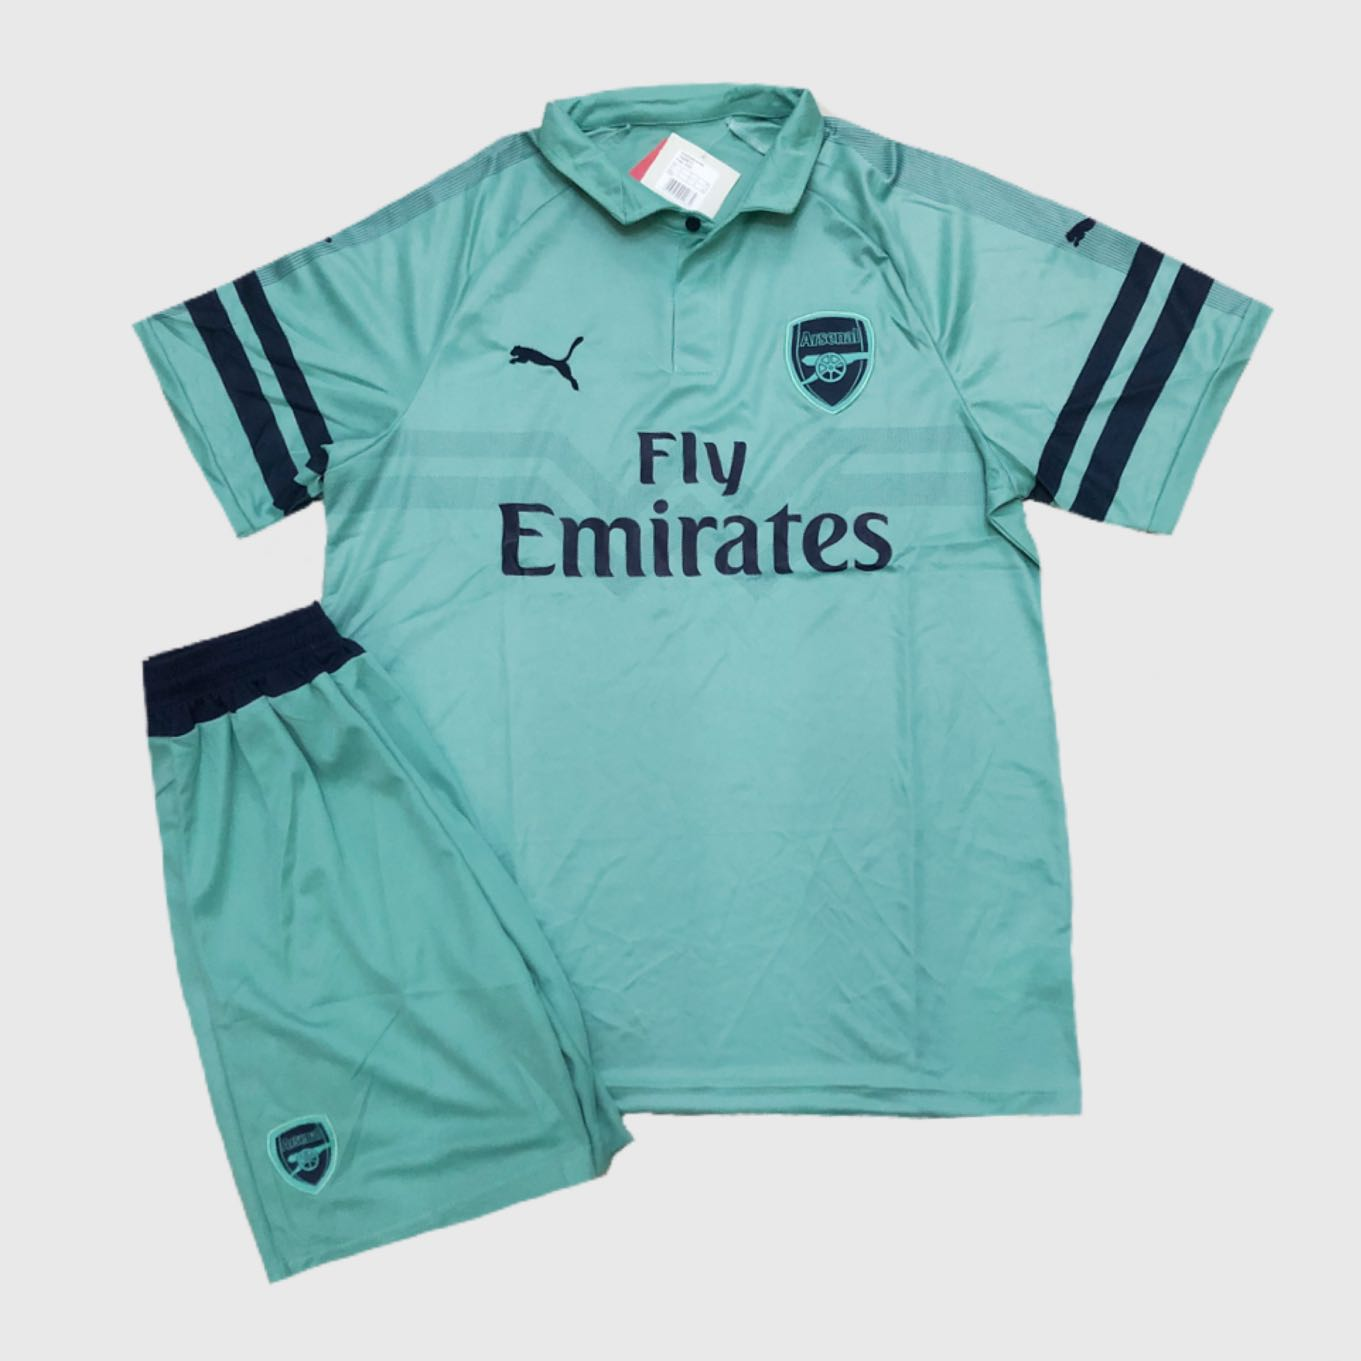 7dd1fca0a16 ❗️SALE❗️Arsenal 18-19 Home Away Third Jersey Kit